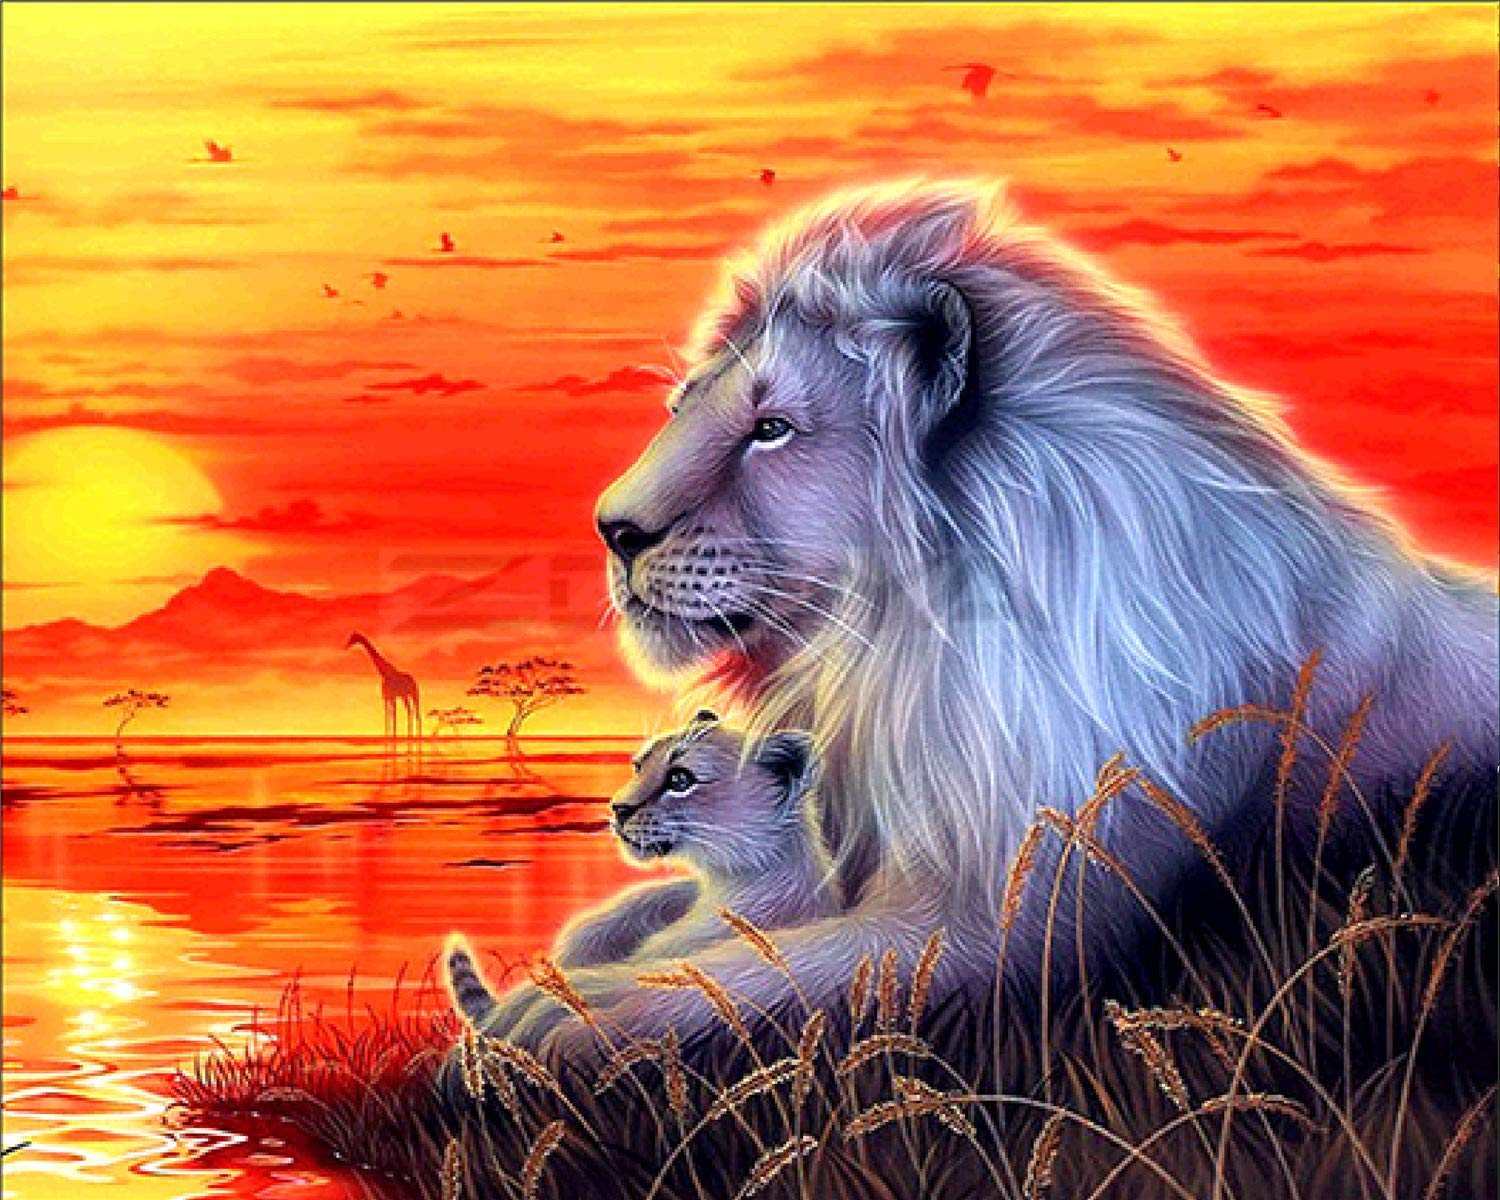 EOBROMD 5D Diamond Painting Kit White Lions 12 x 16inch Full Drill DIY Embroidery 3D Diamond Painting Wall Sticker for Home Decor